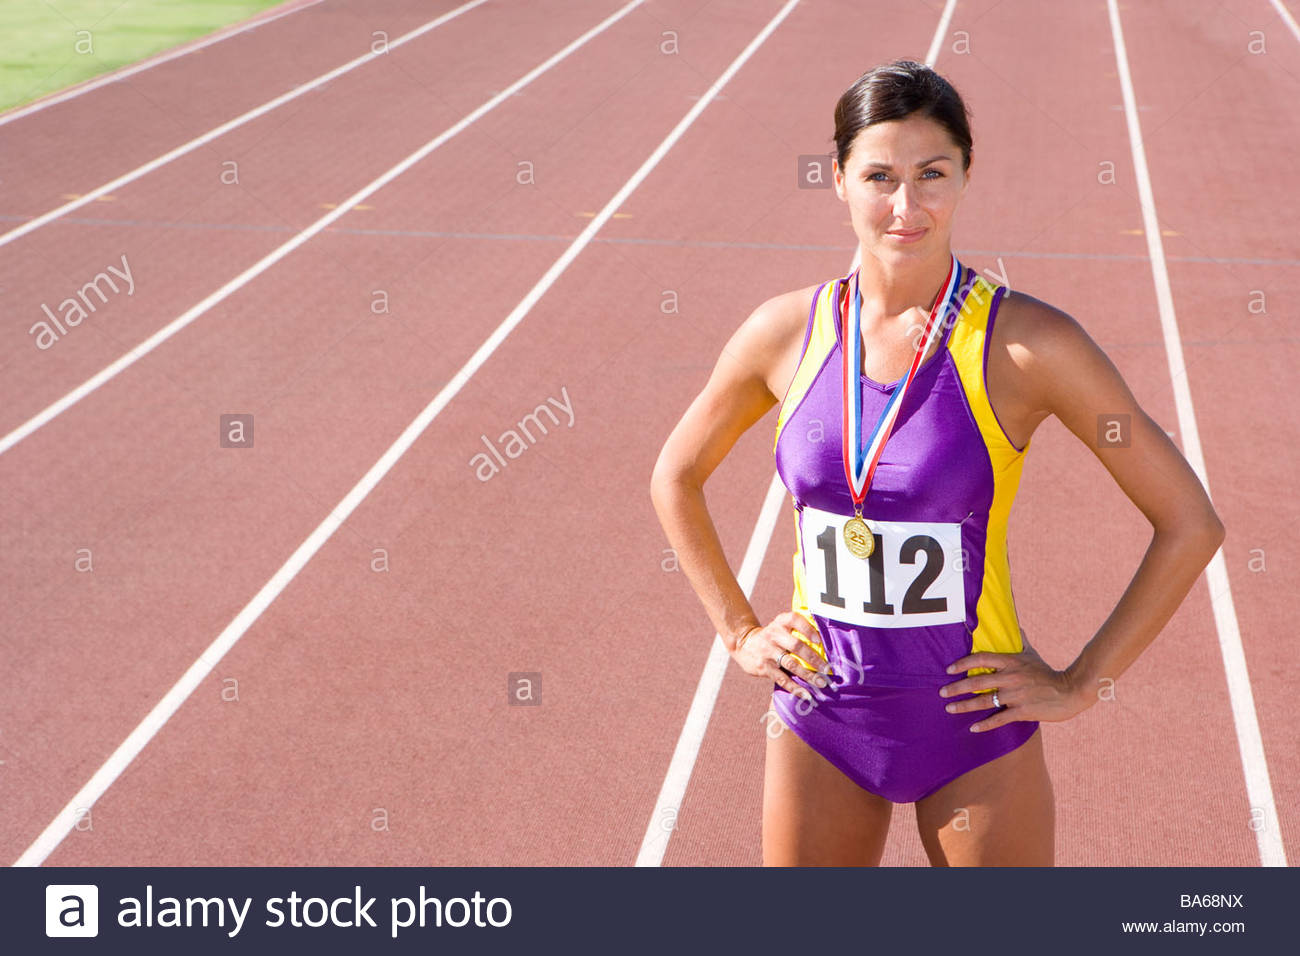 Female athlete with gold medal on race track Stock Photo